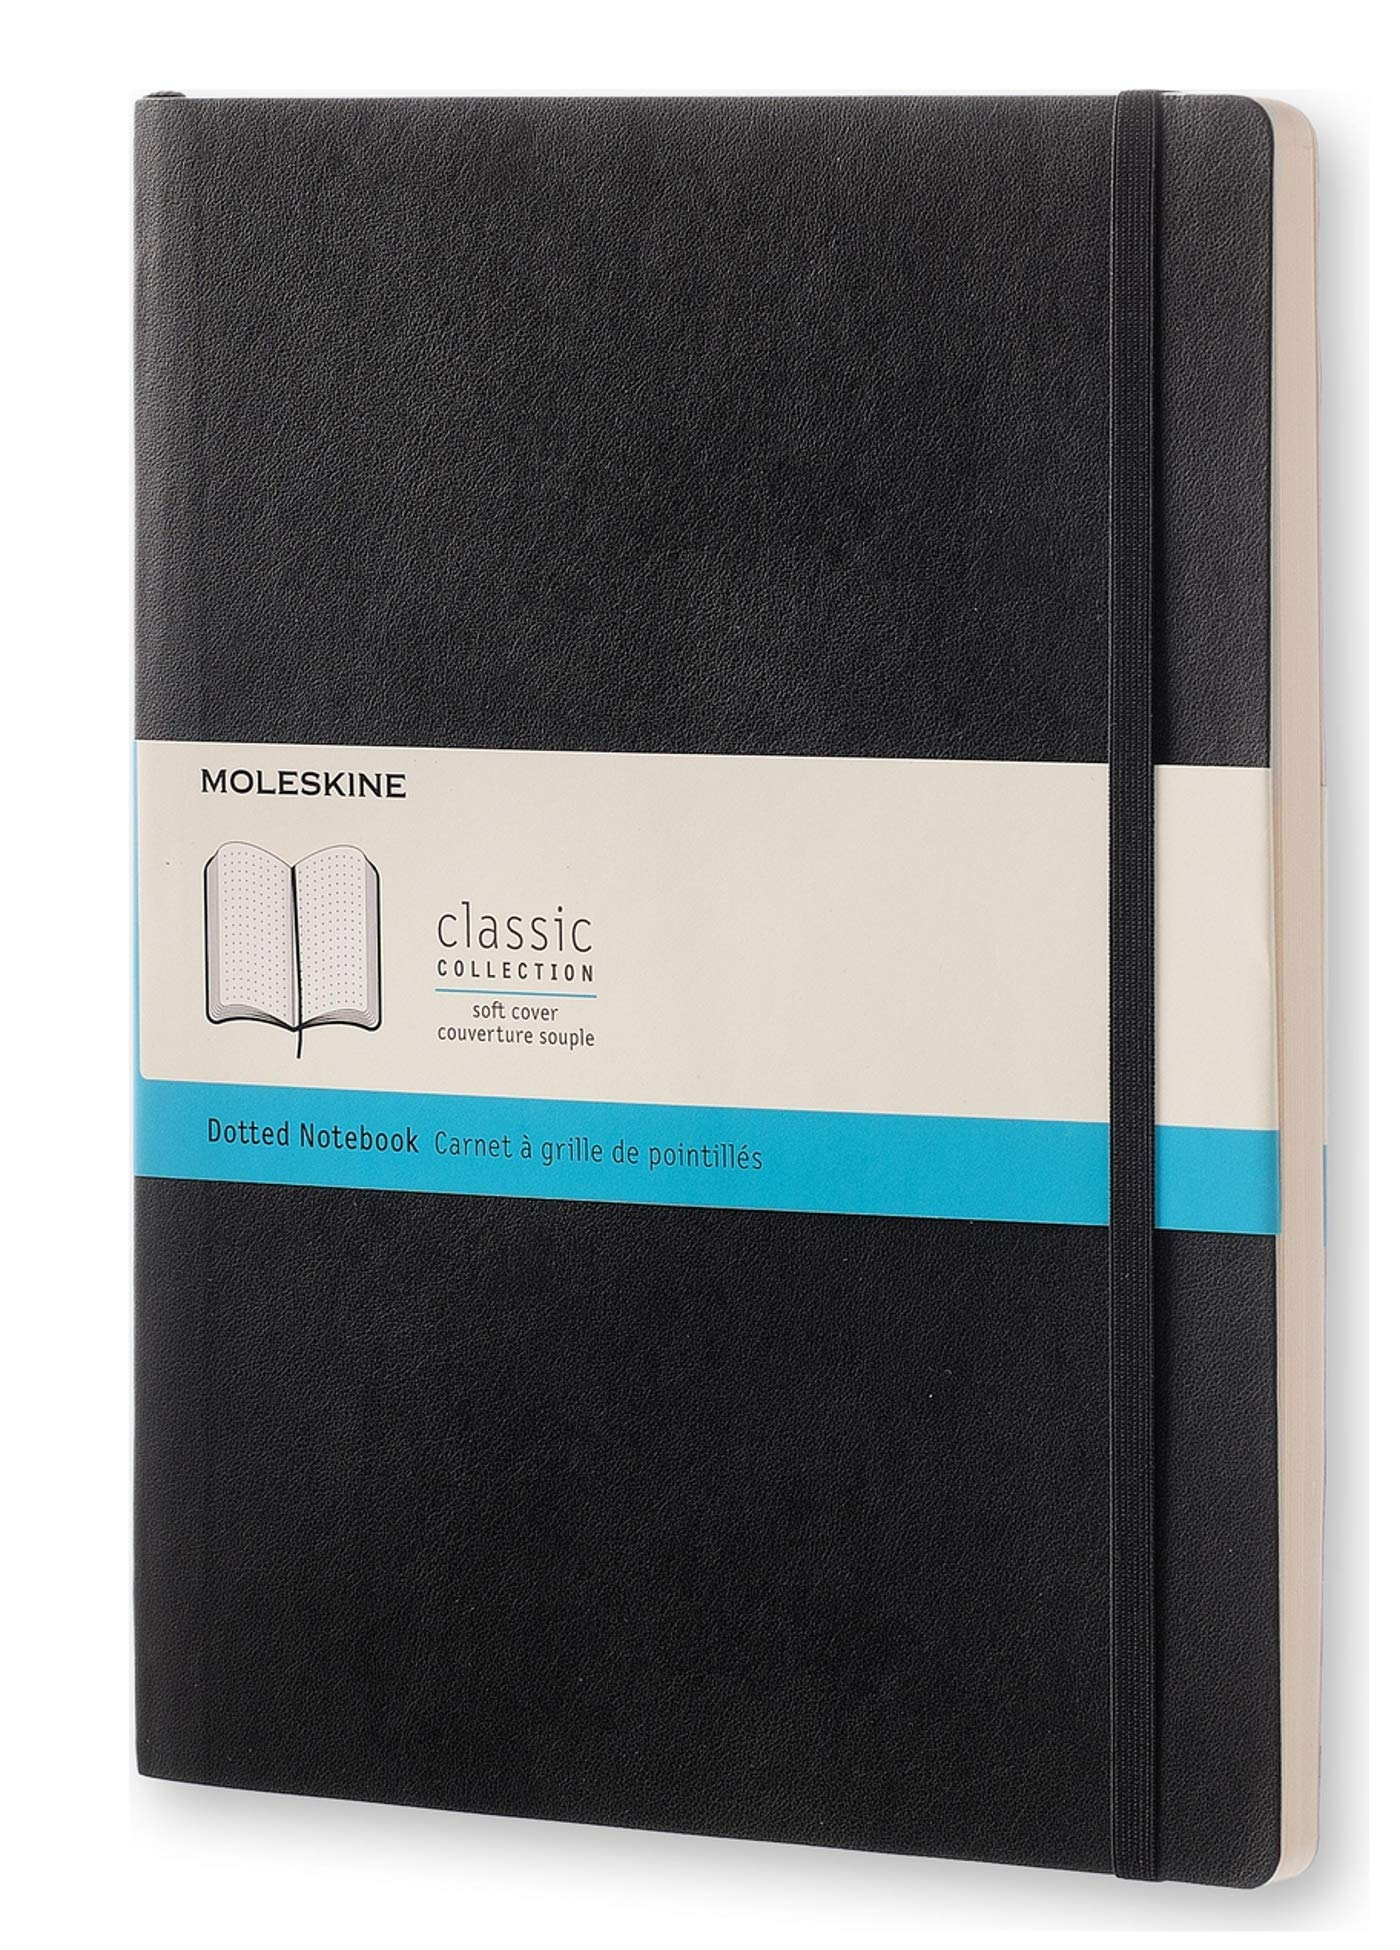 Moleskine Classic Notebook, Soft Cover, XL (7.5'' x 9.5'') Dotted, Black by Moleskine